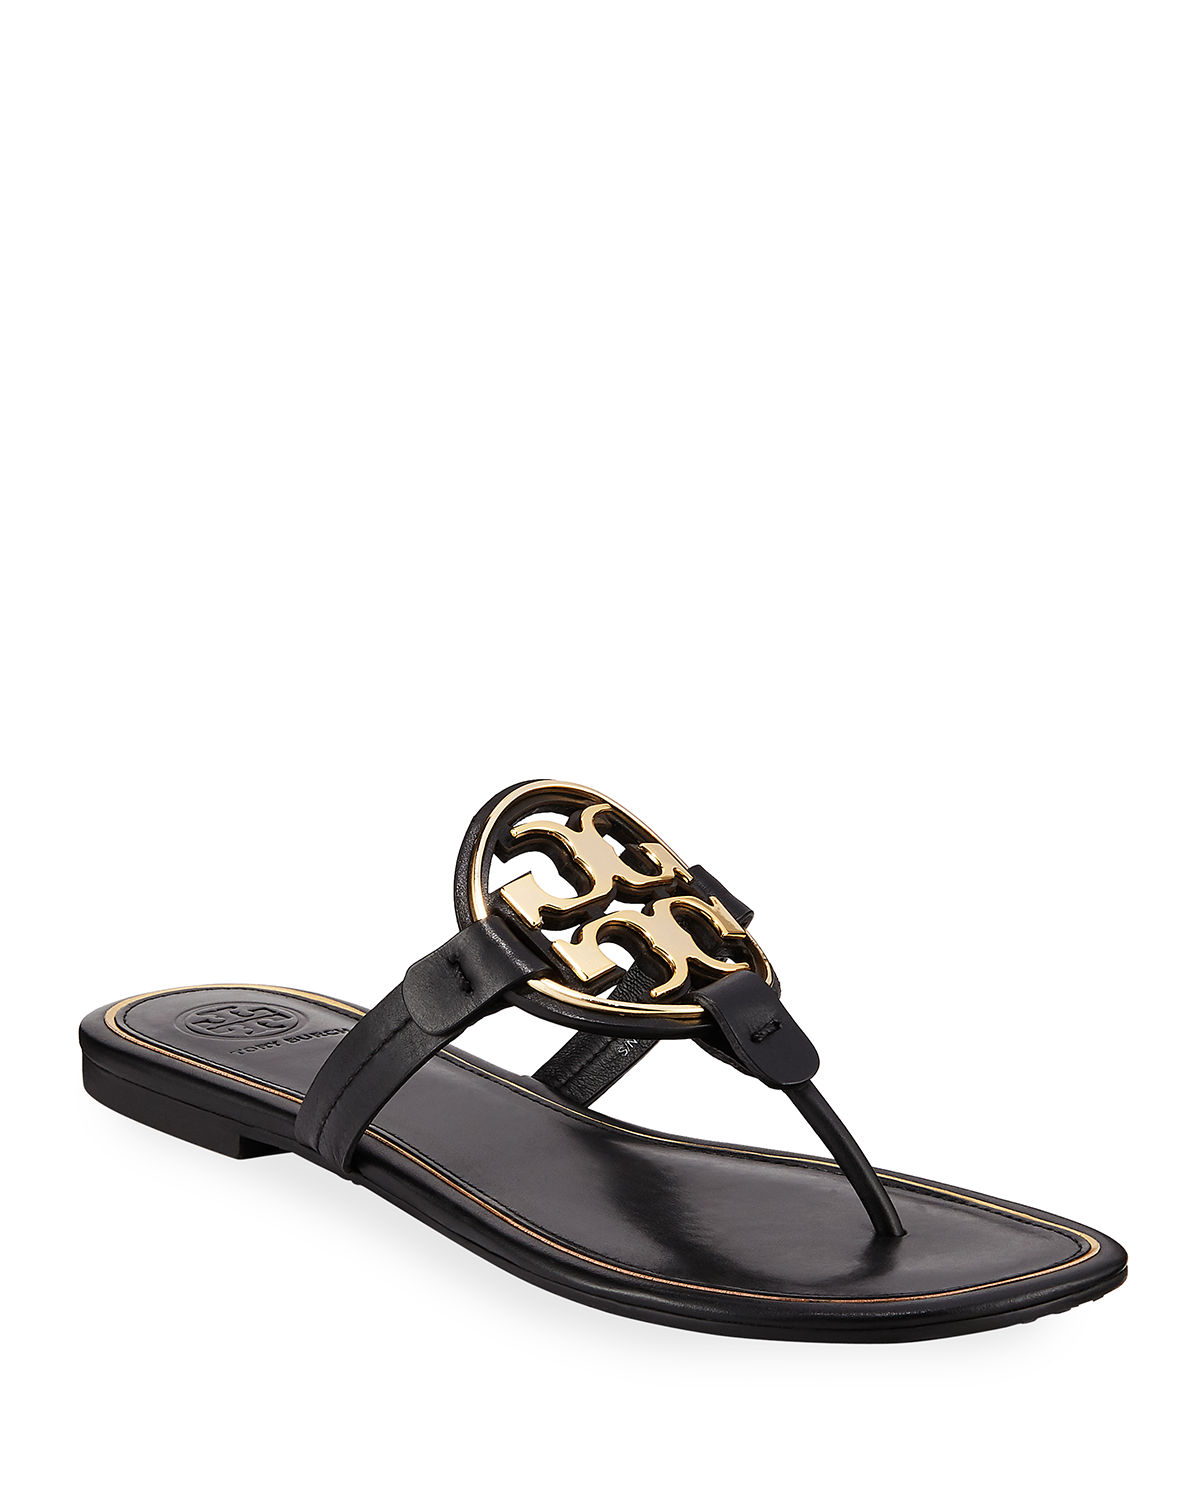 c433d07afd61 Tory Burch Miller Flat Metal Logo Slide Sandals